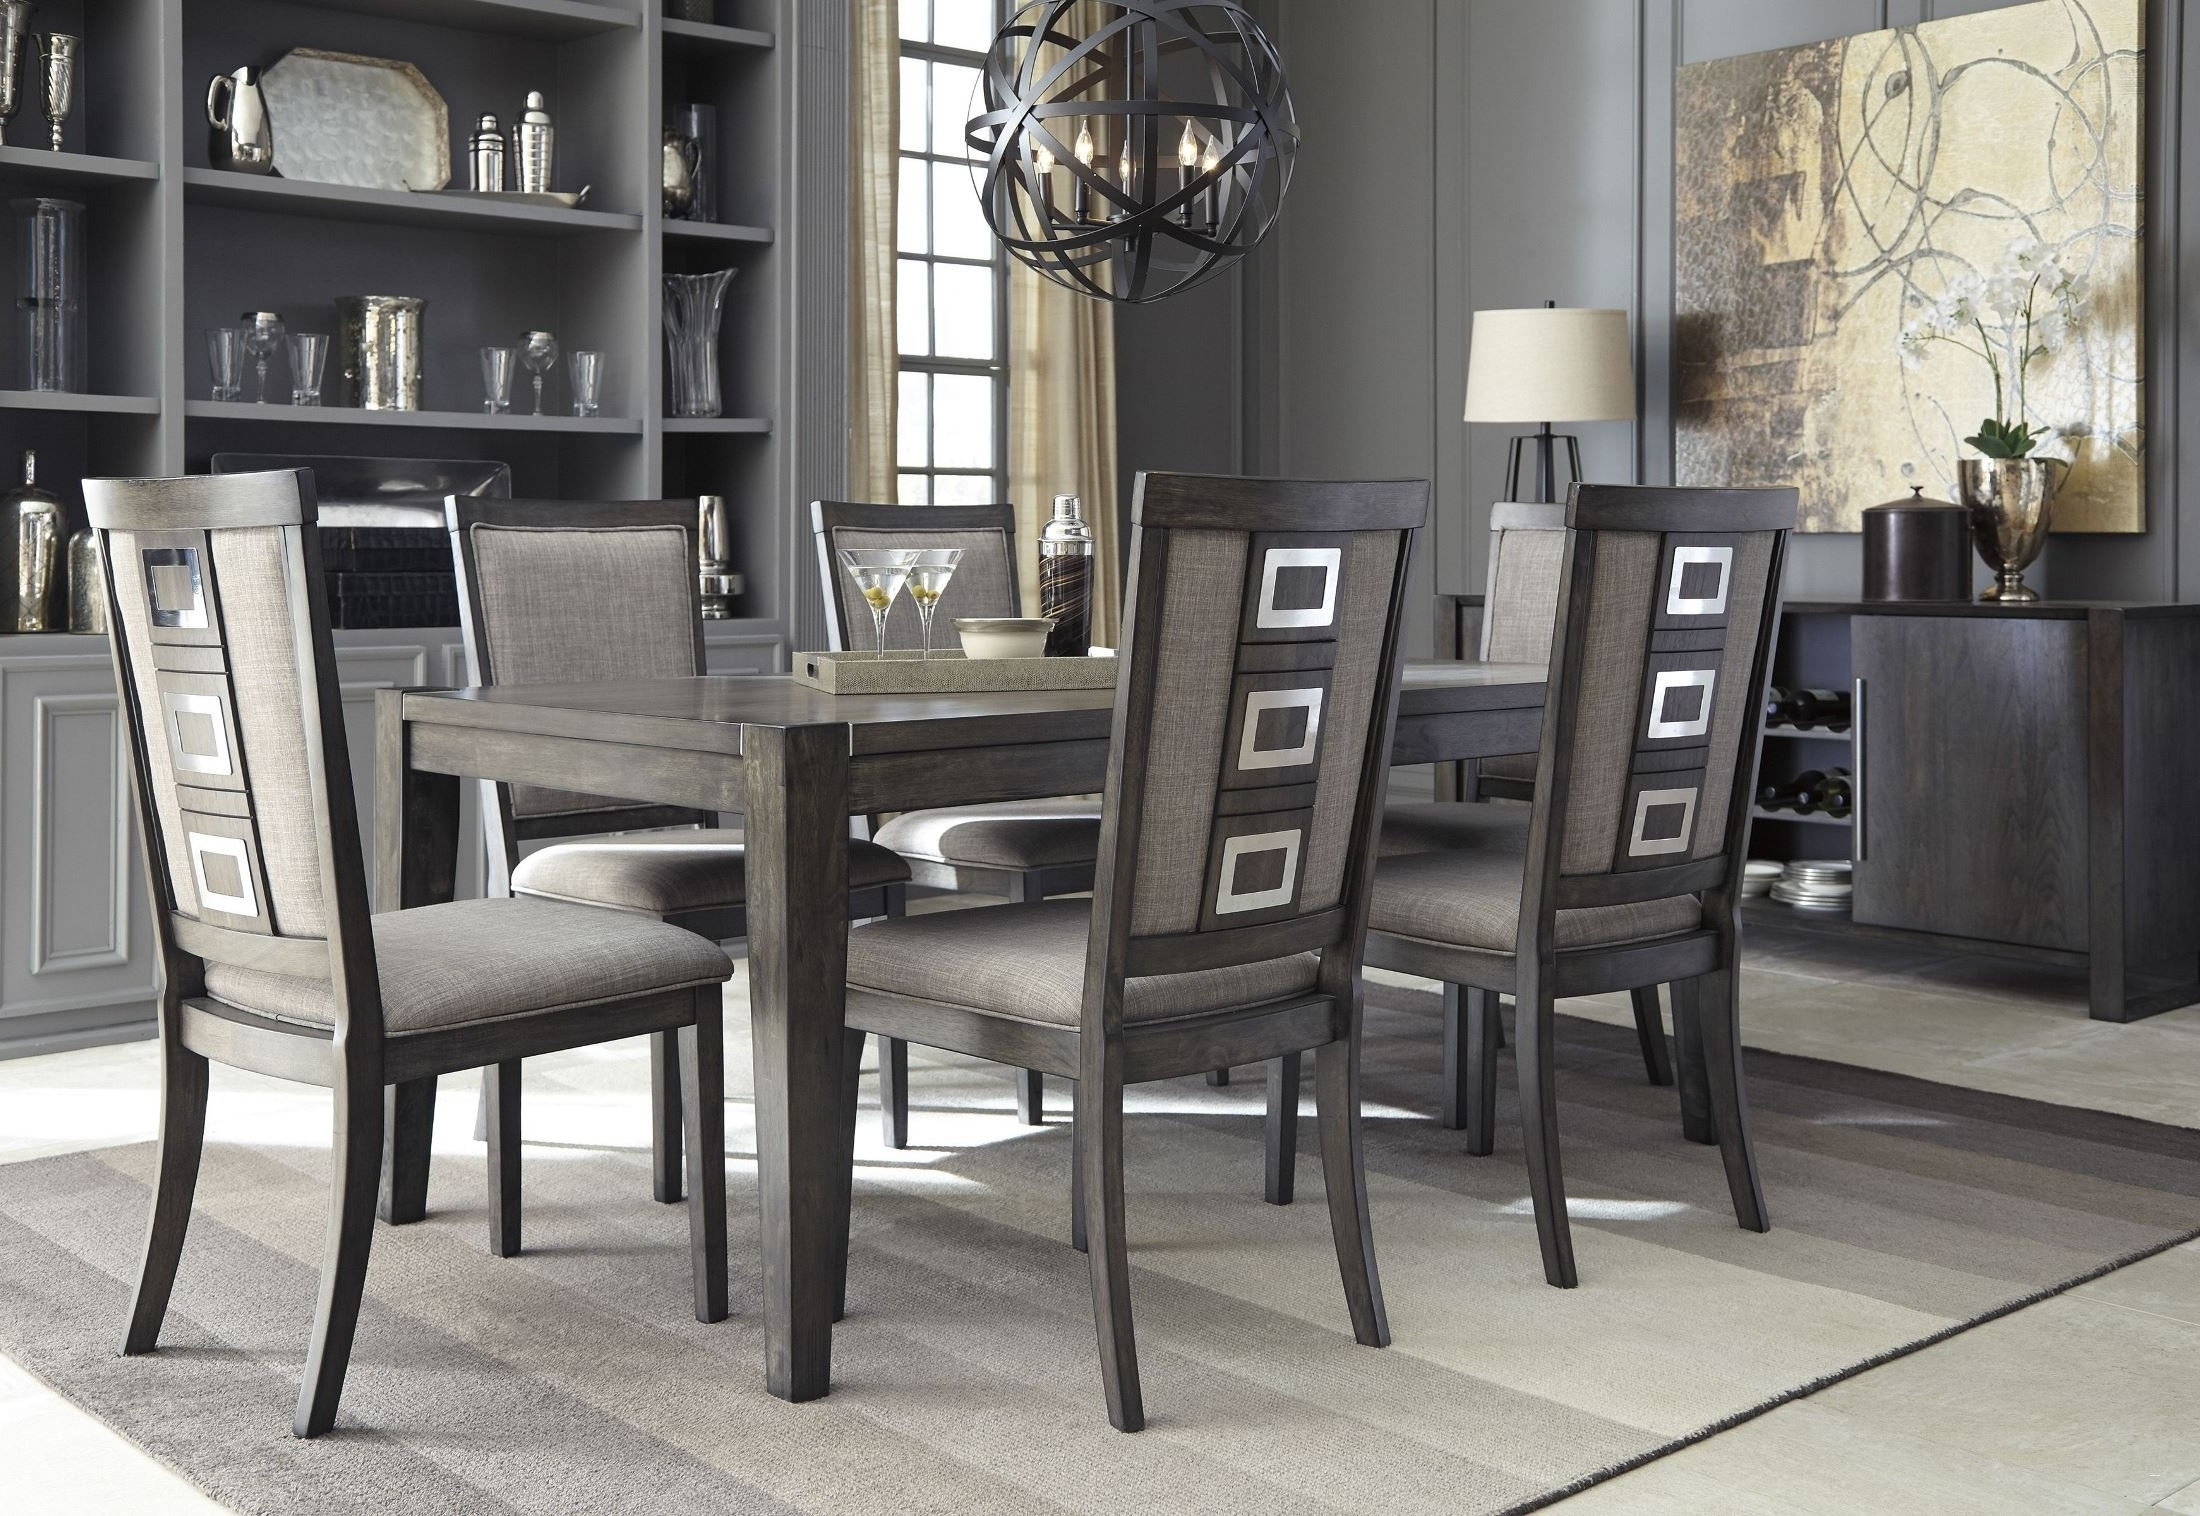 Cora 7 Piece Dining Sets In Favorite Coralayne Dining Room Set Fresh Cheap Dining Room Table Sets (Gallery 8 of 25)